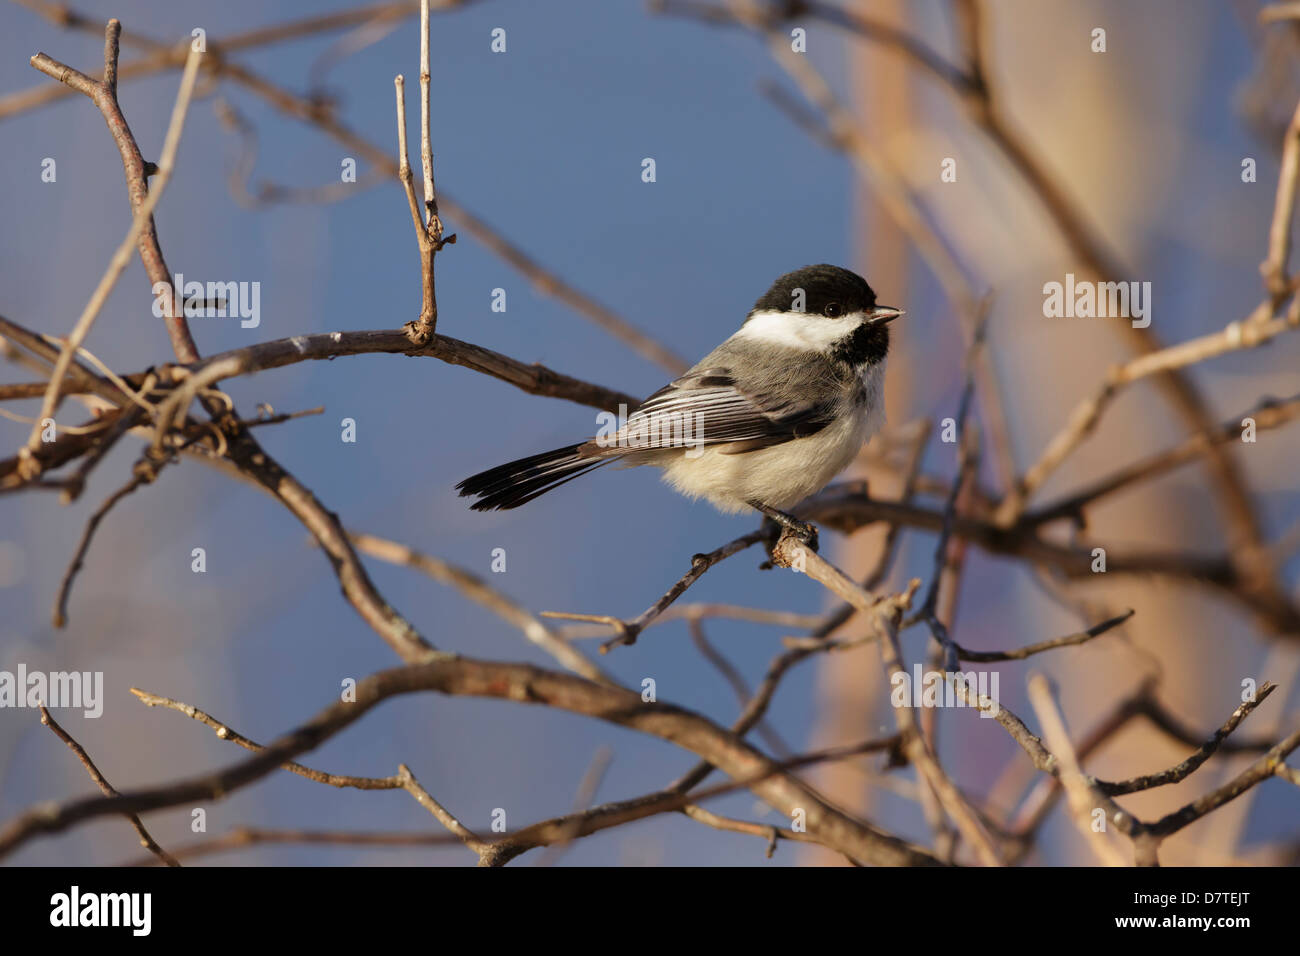 Black-capped Chickadee (Poecile atricapillus) in a late winter tree. - Stock Image